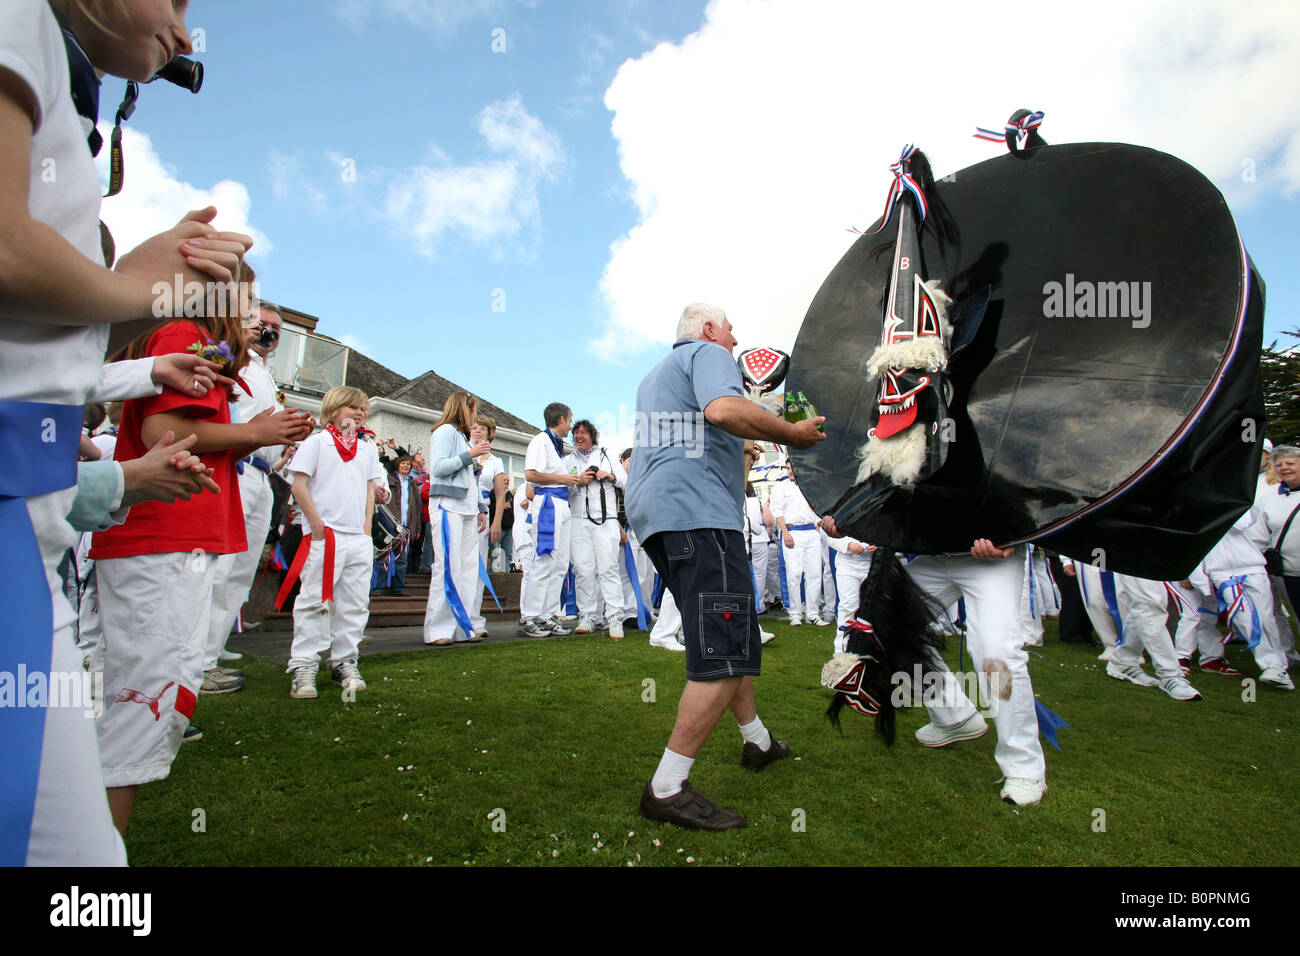 Padstow Obby Oss, May Day, Padstow, Cornwall, UK - Stock Image